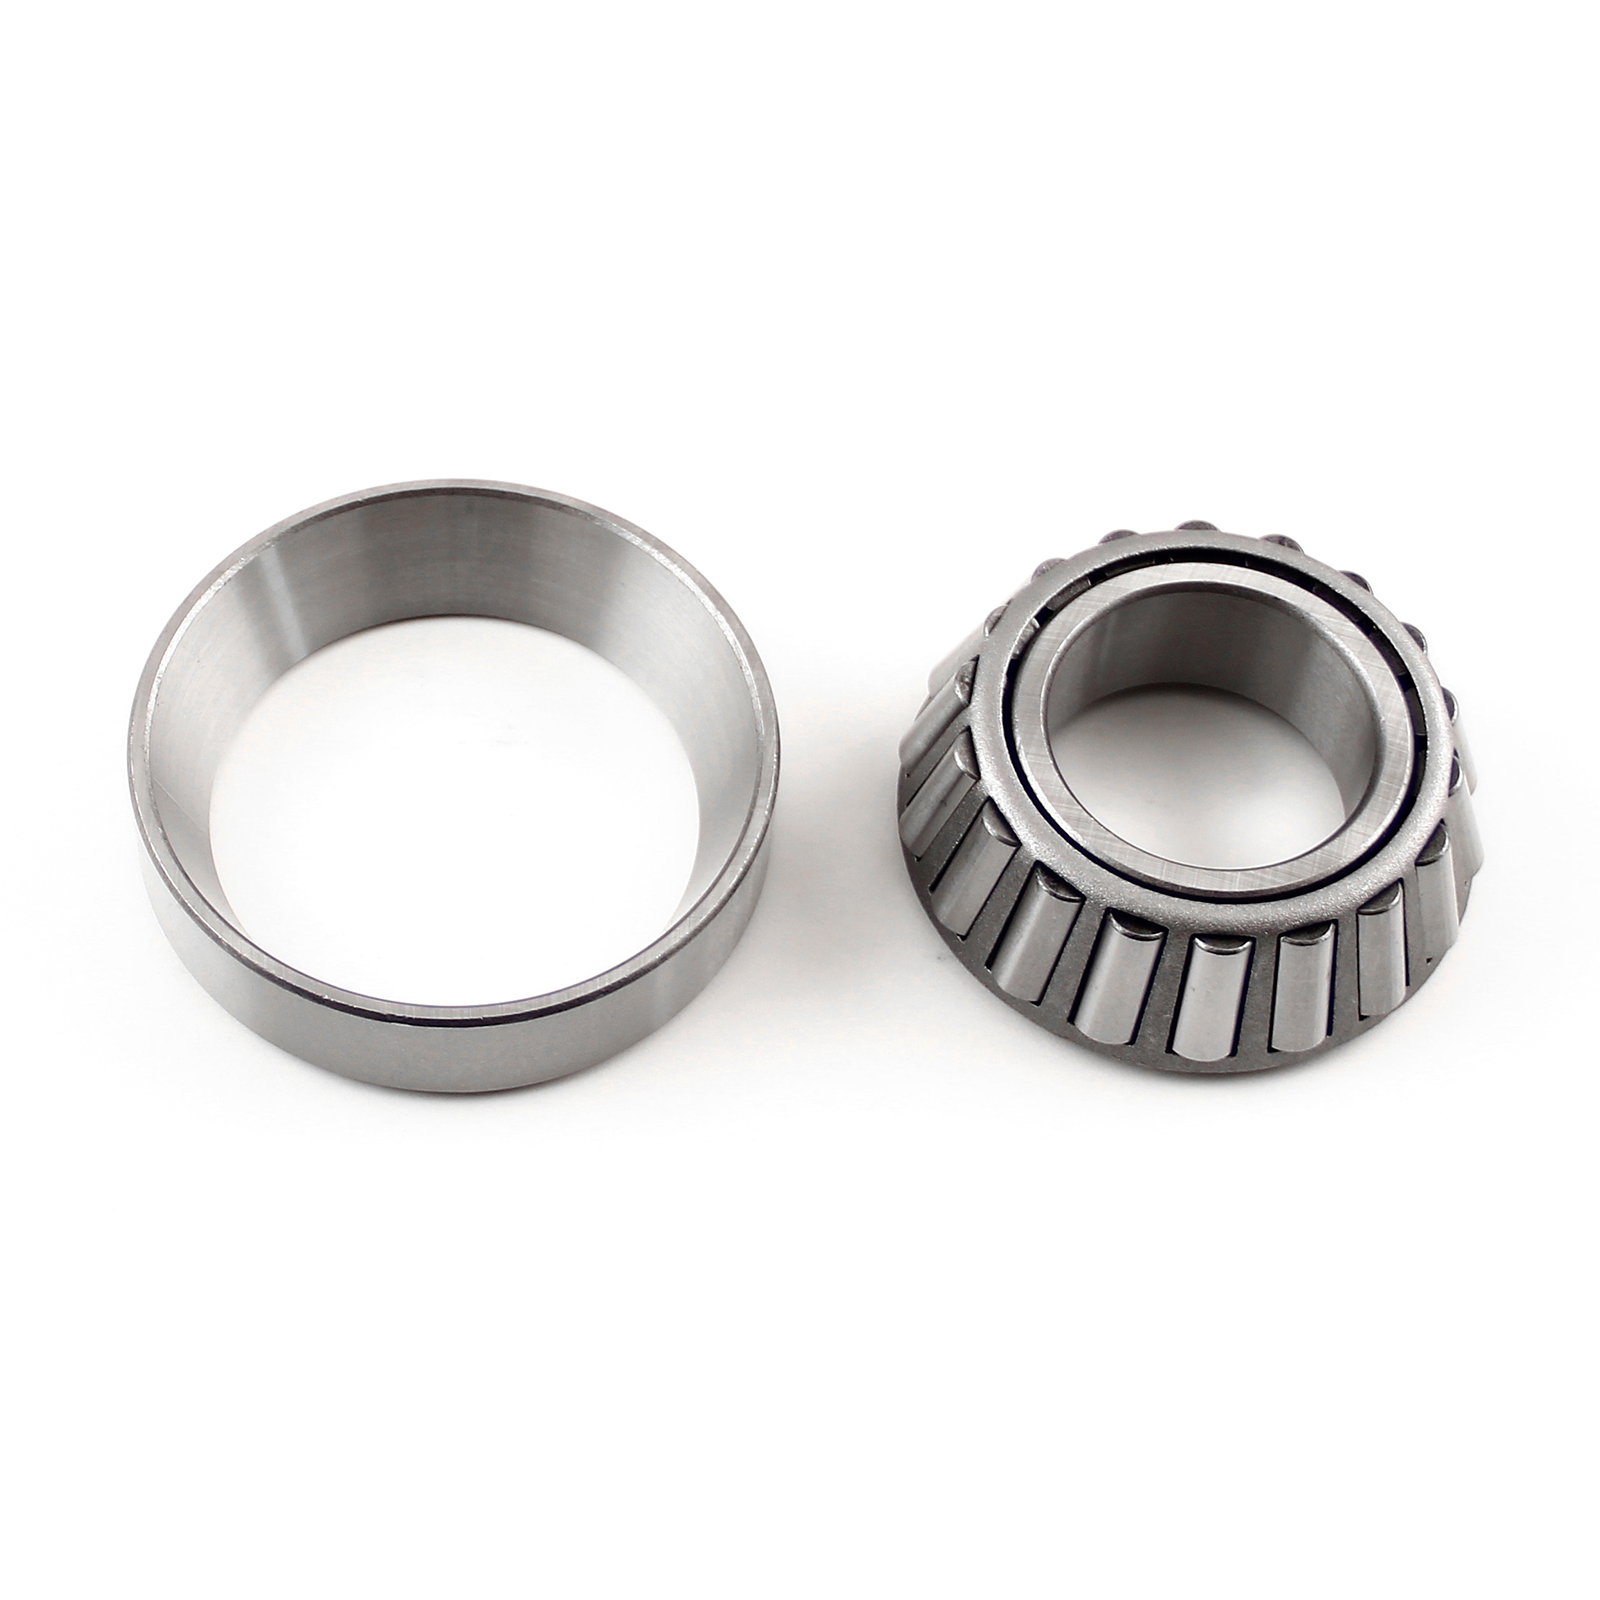 Pinion Bearing Industry Std Ref: Hm804846 / 810